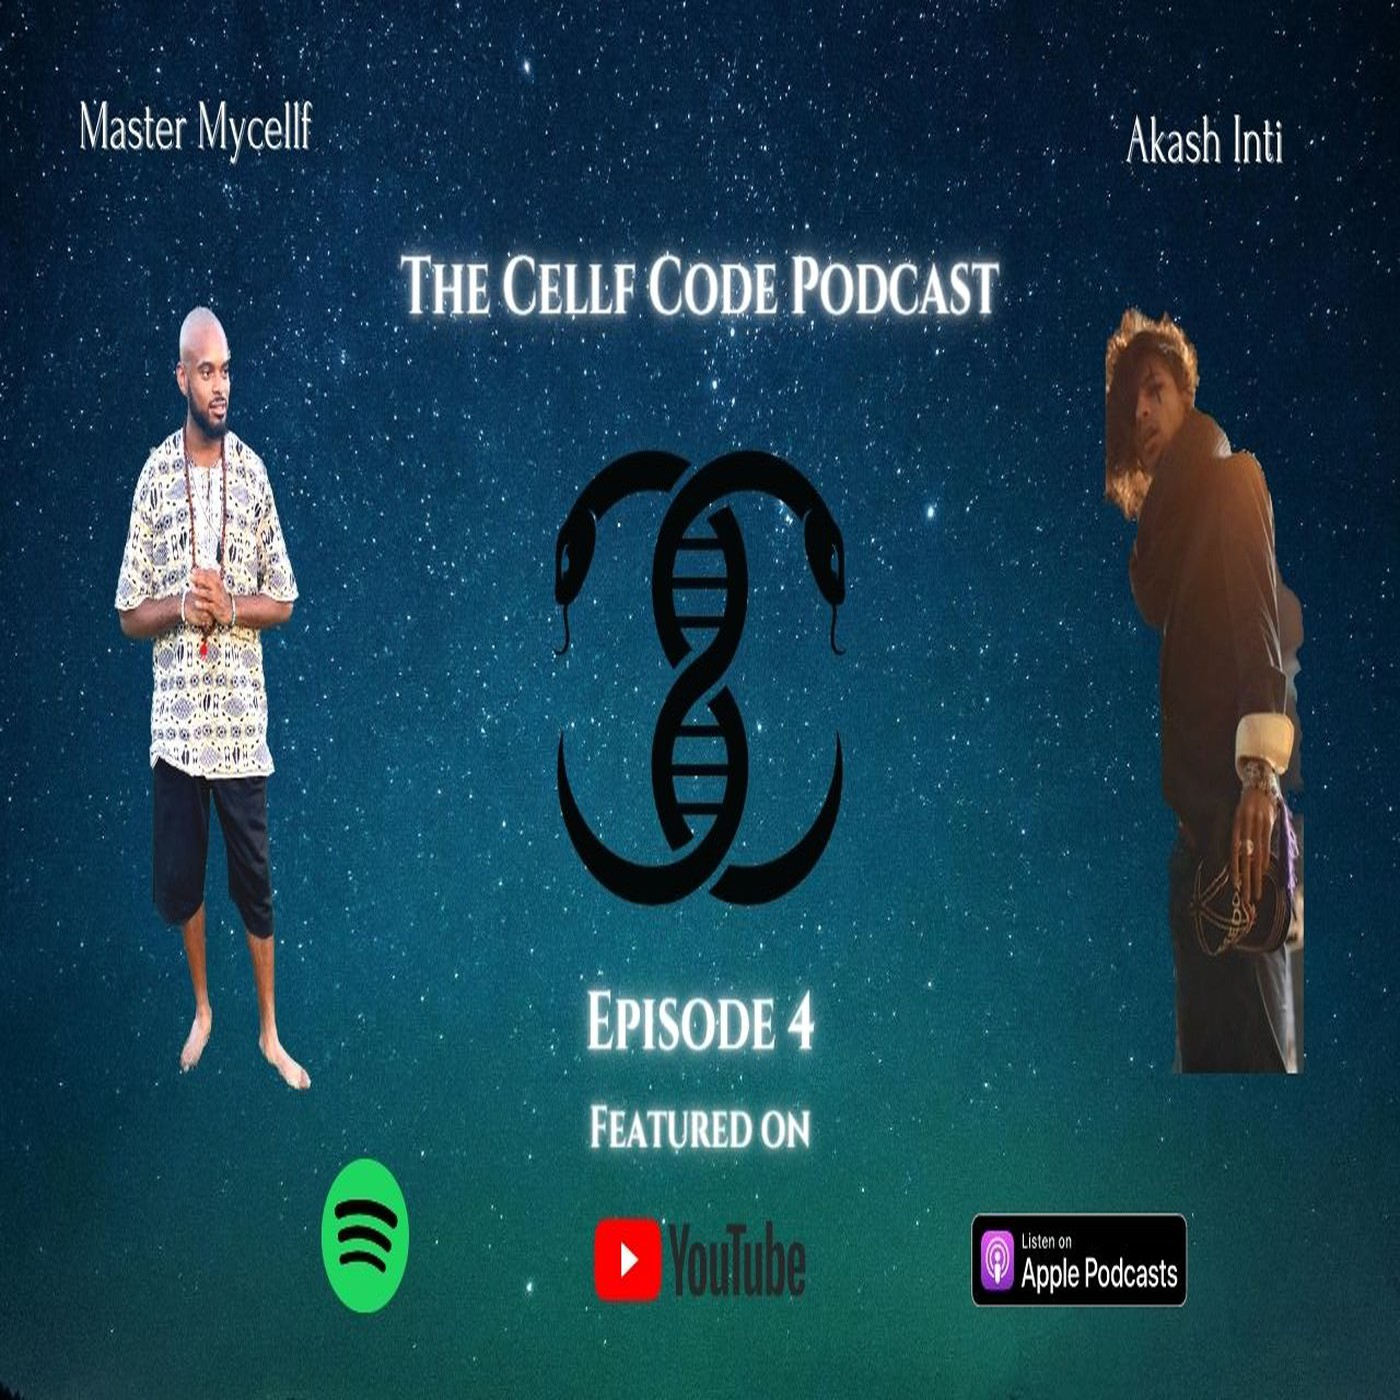 The Cellf Code Podcast